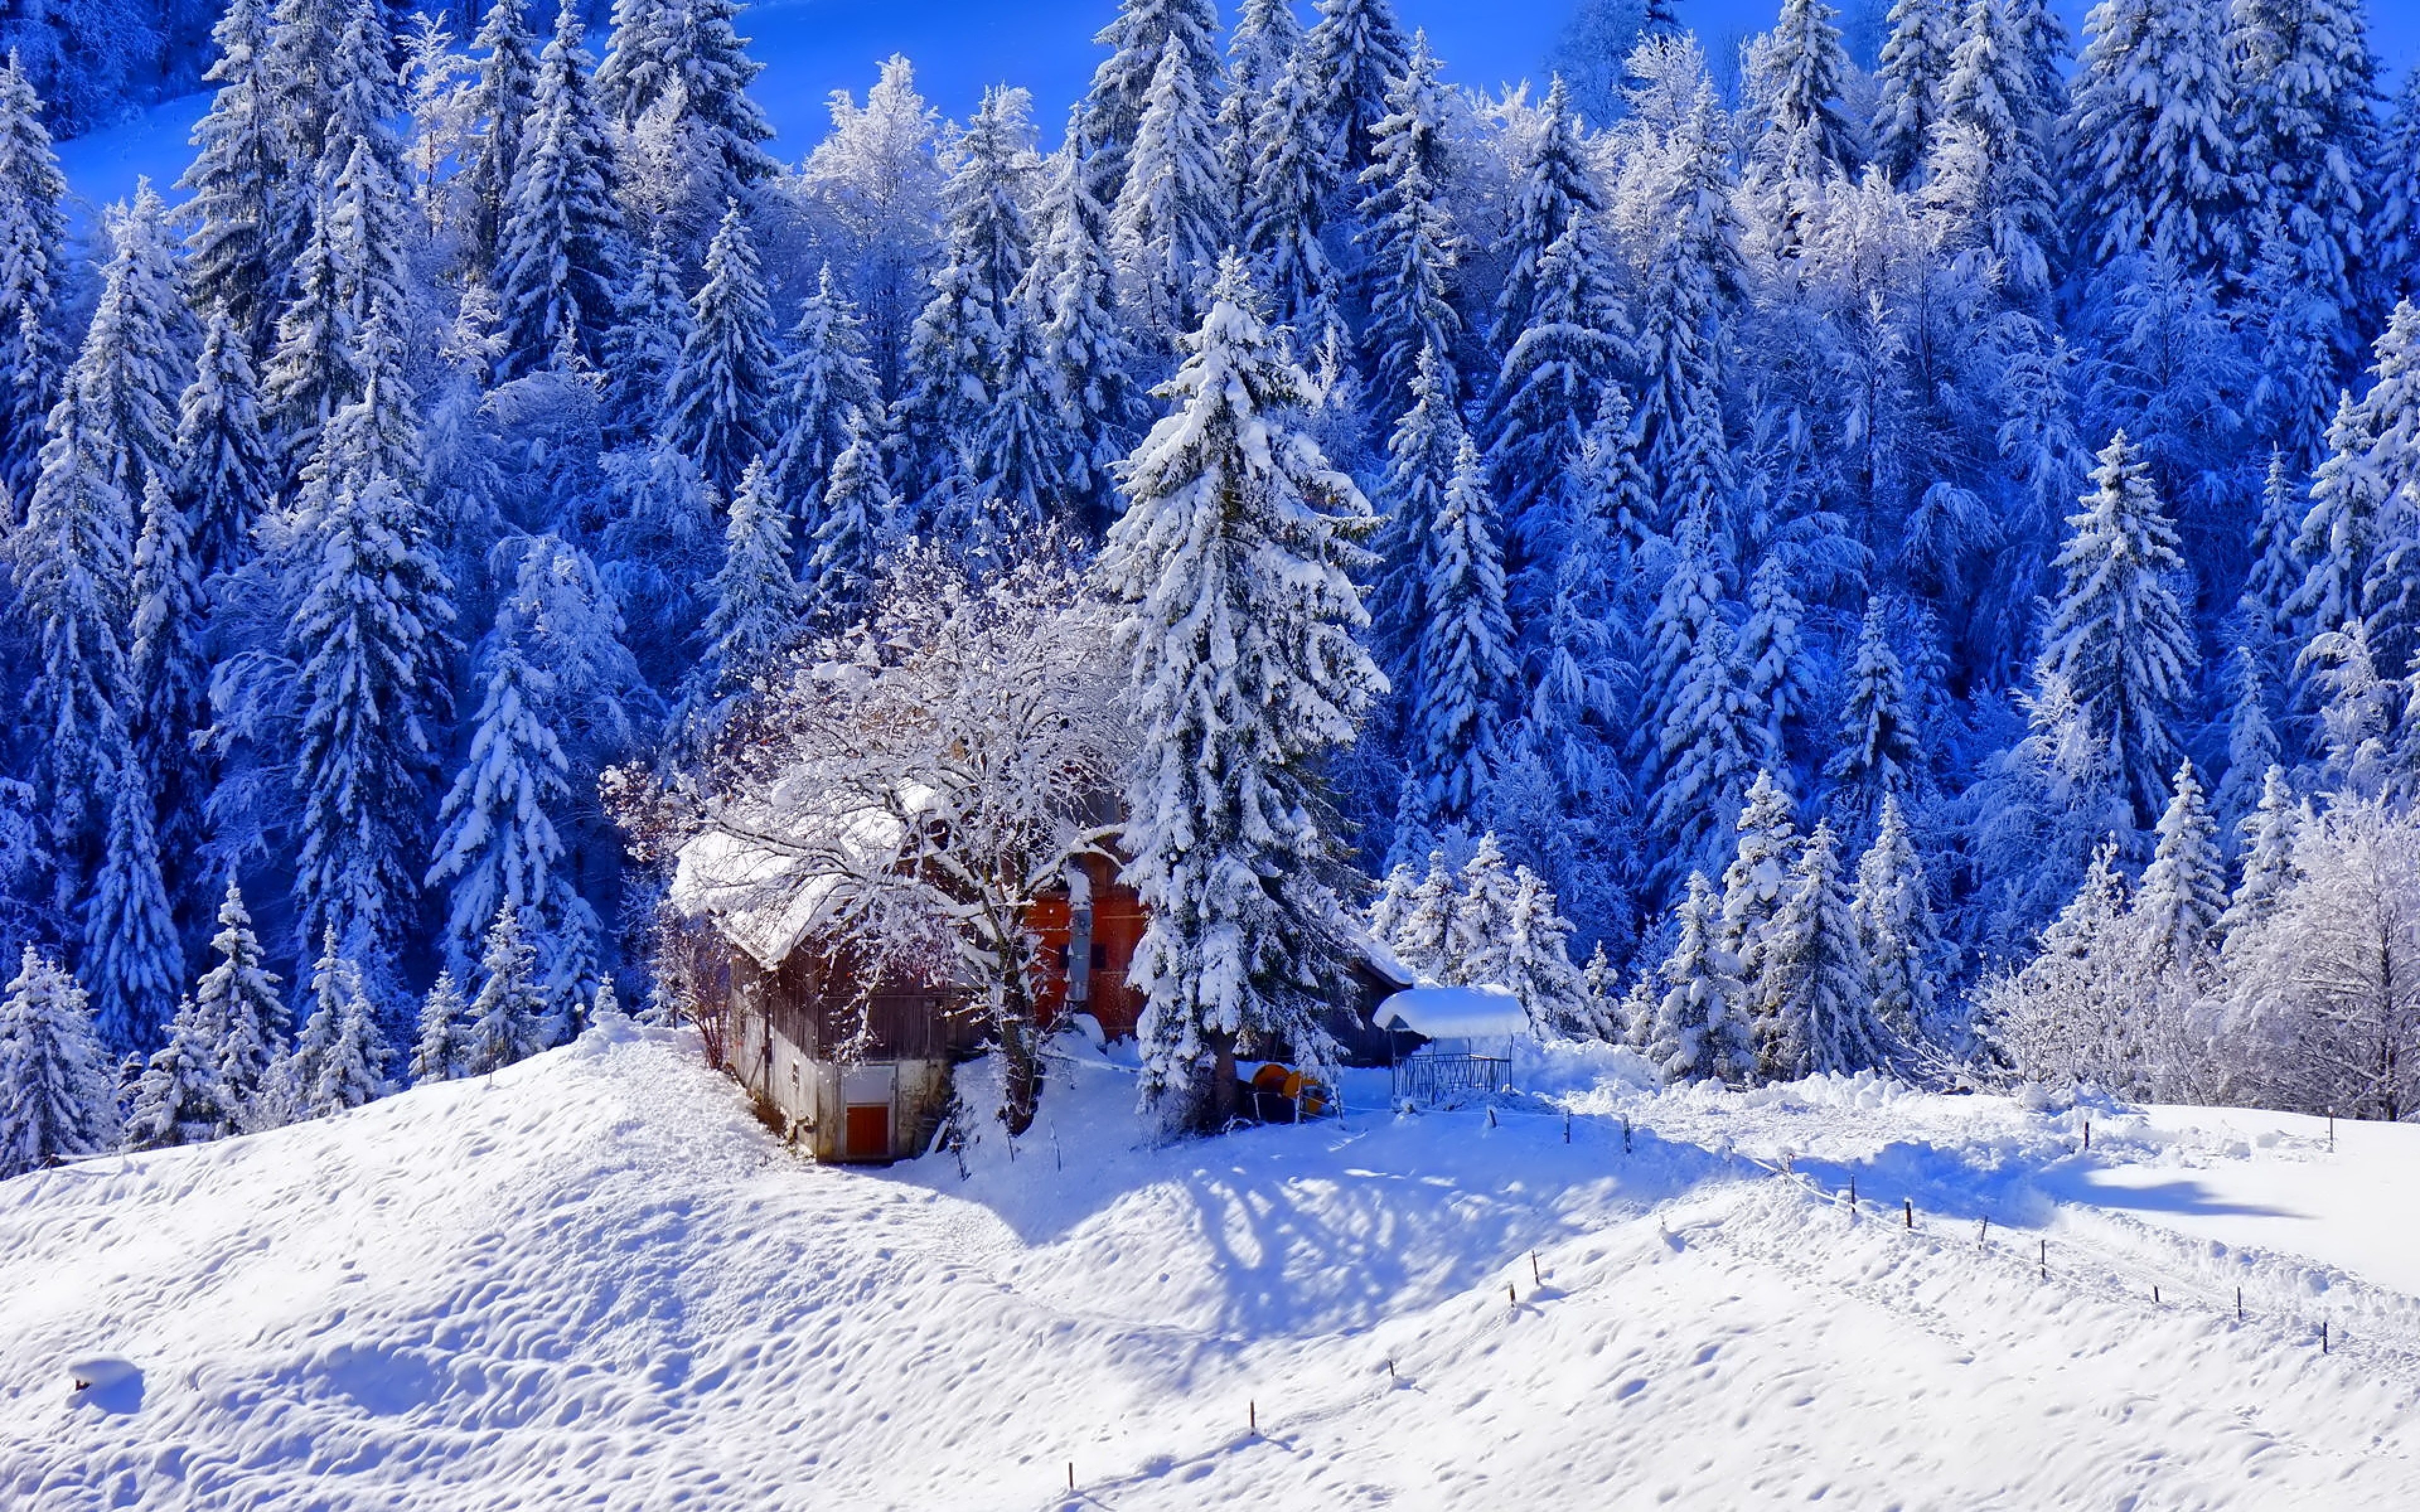 Hd Background Winter Snow House Ice Trees Hill Wallpaper